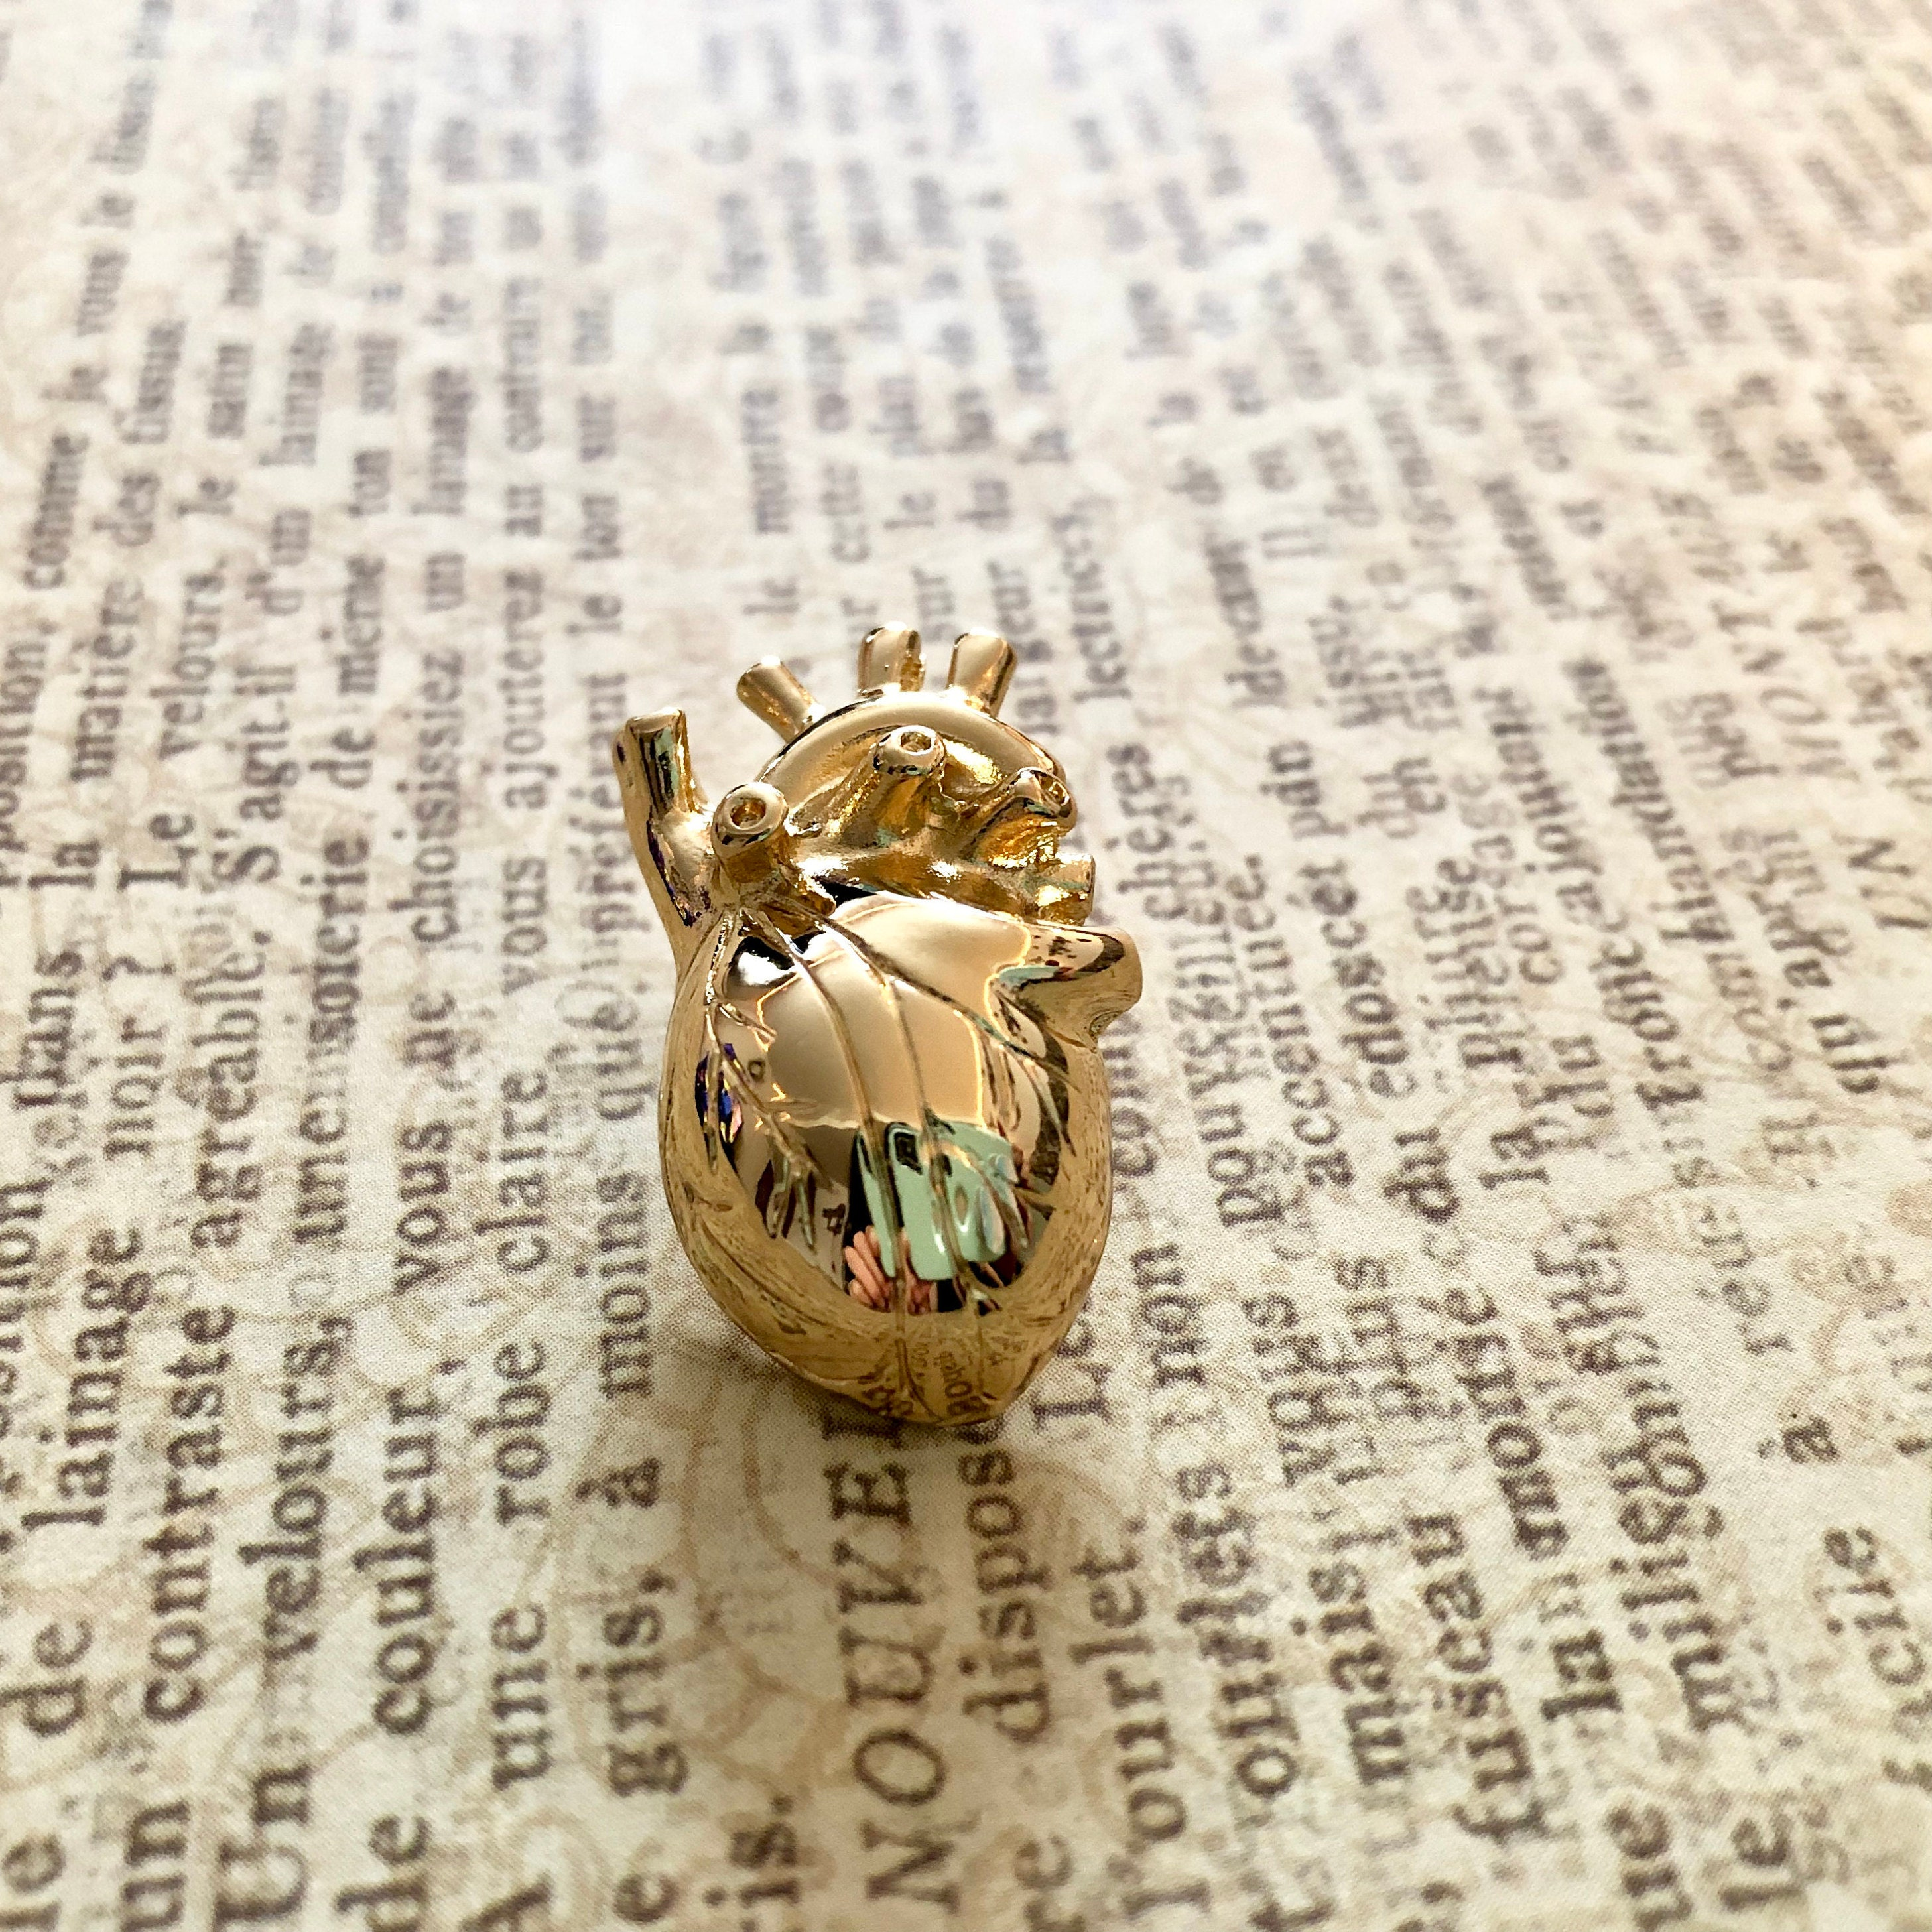 048fd1a5cd261 Human Heart Doctor Medical Science Brooch Lapel Pin Jewelry Medical Student  Gift A86